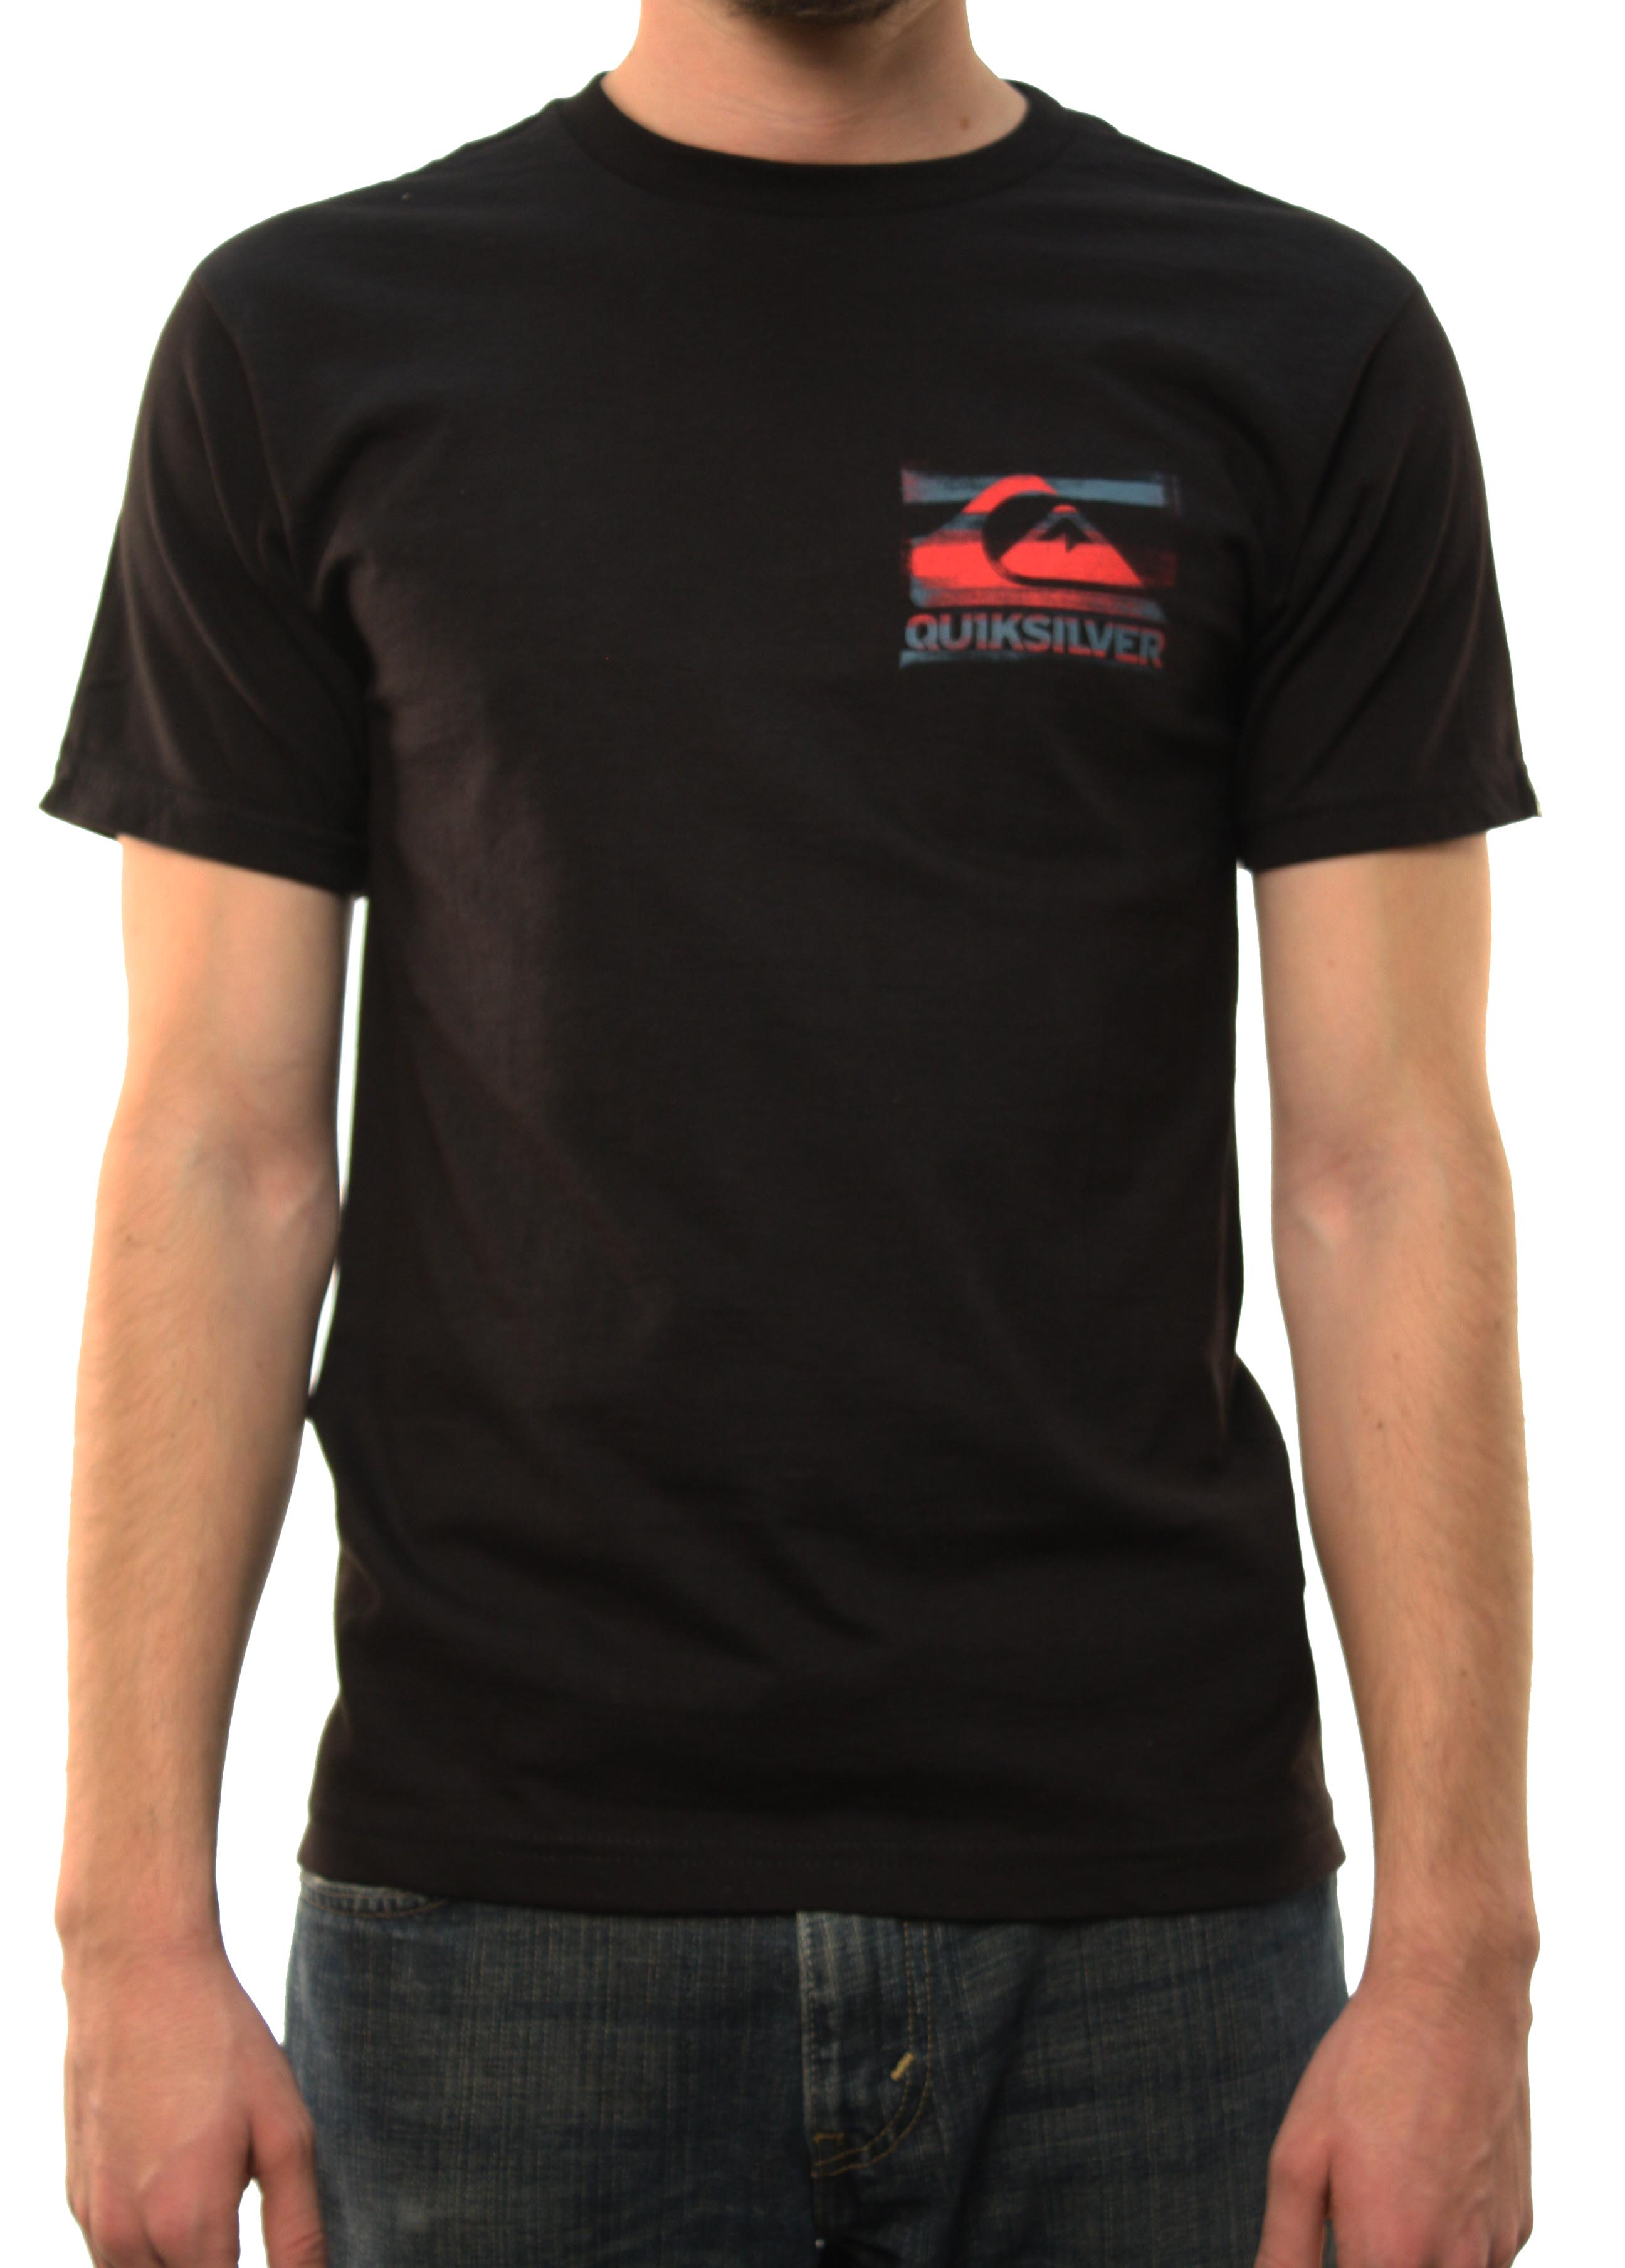 "Quiksilver Men's ""Hesitate-MT0 LaJolla"" T-Shirt Black 12036LP7-BLK at Sears.com"